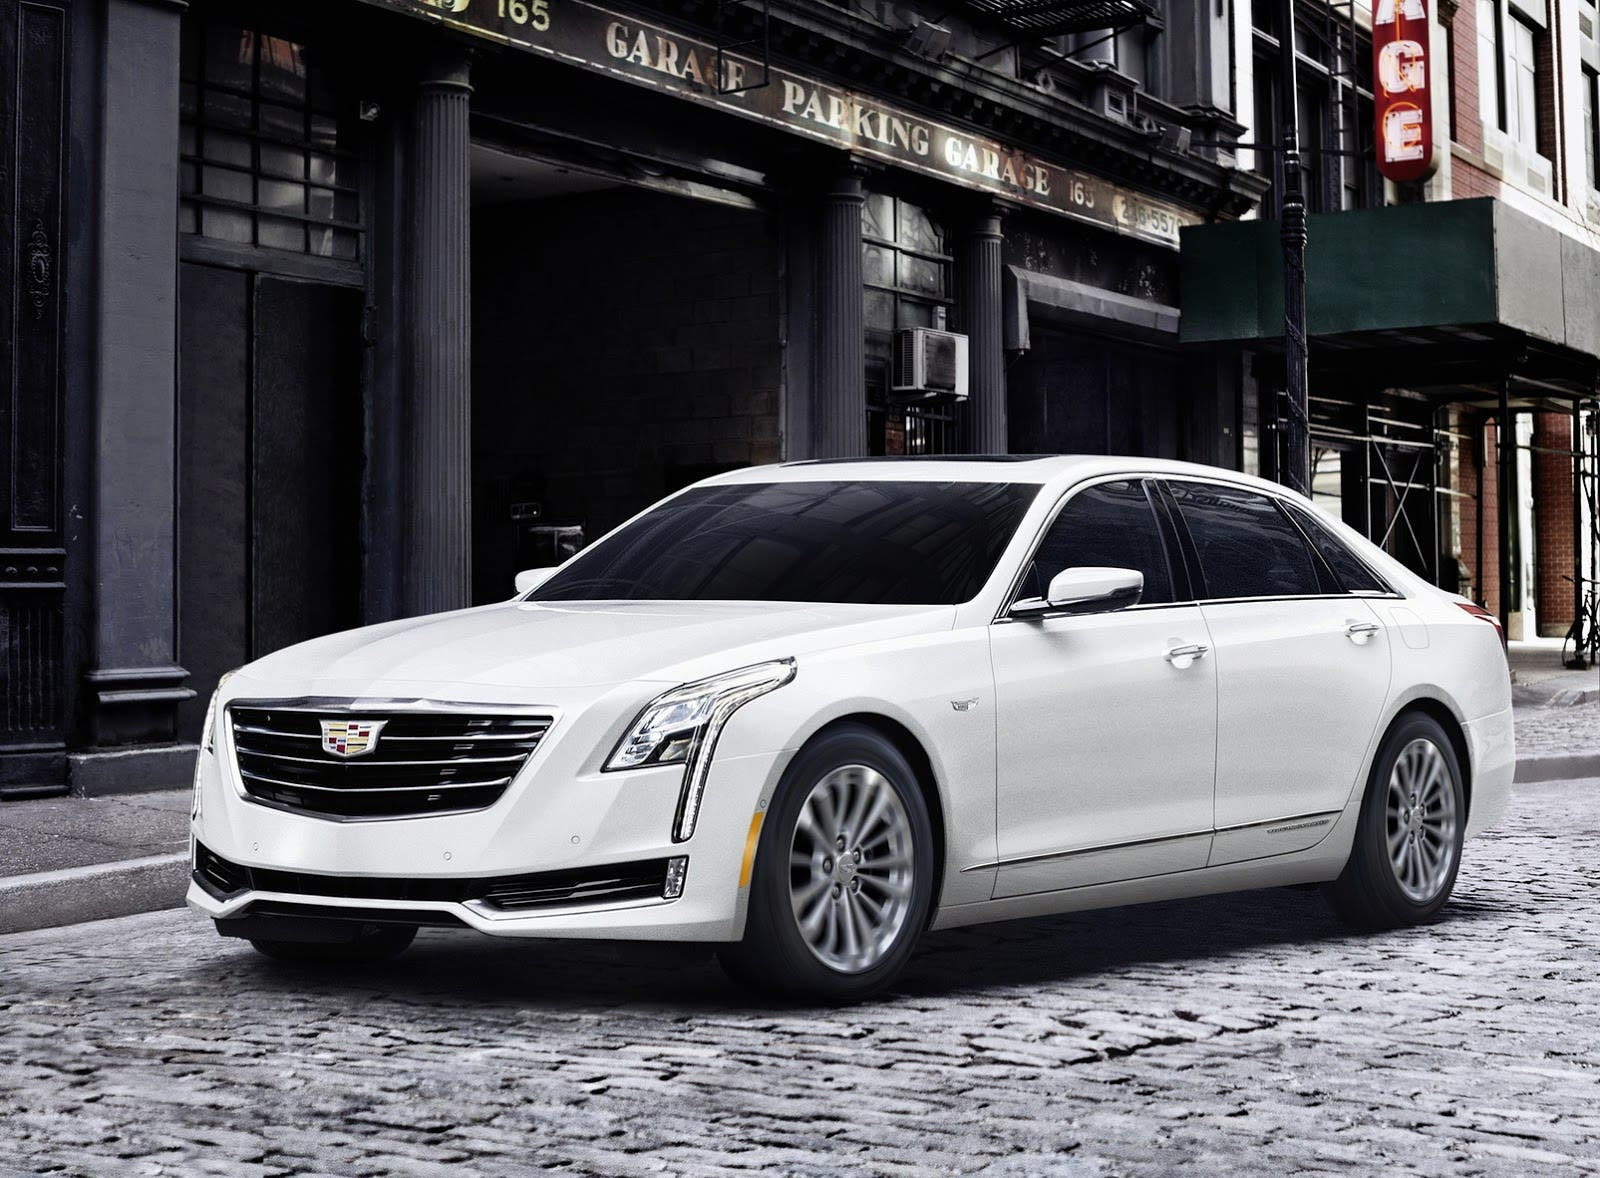 The 2018 Cadillac Ct6 Phev Is A Fairly Large Offering For Plug In Hybrid Despite That It Has Been Granted 62 Mpge Fuel Energy Efficiency Rating By